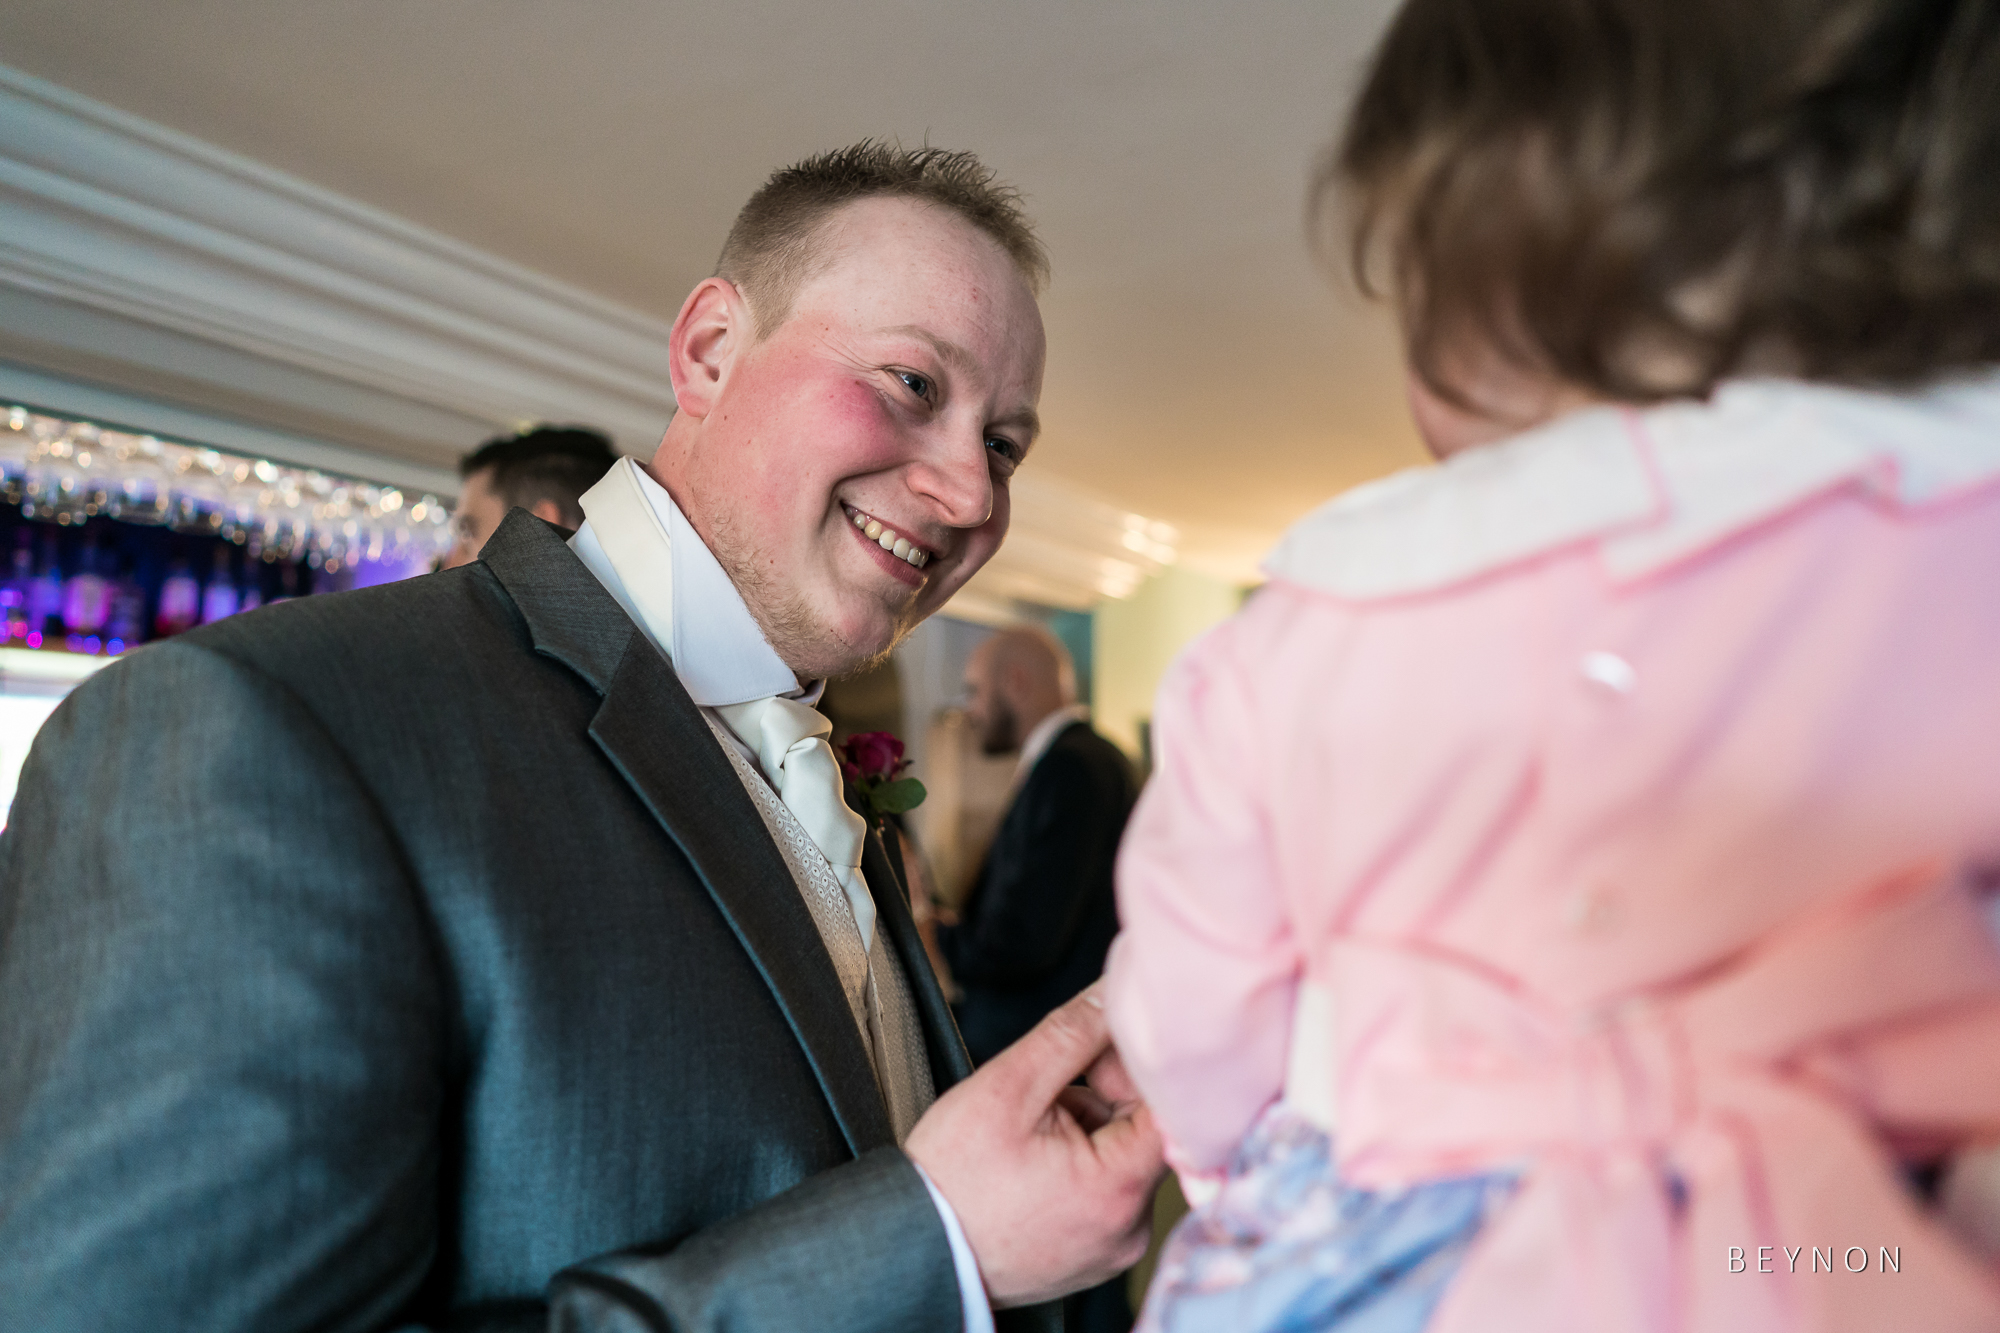 Groom smiles with child